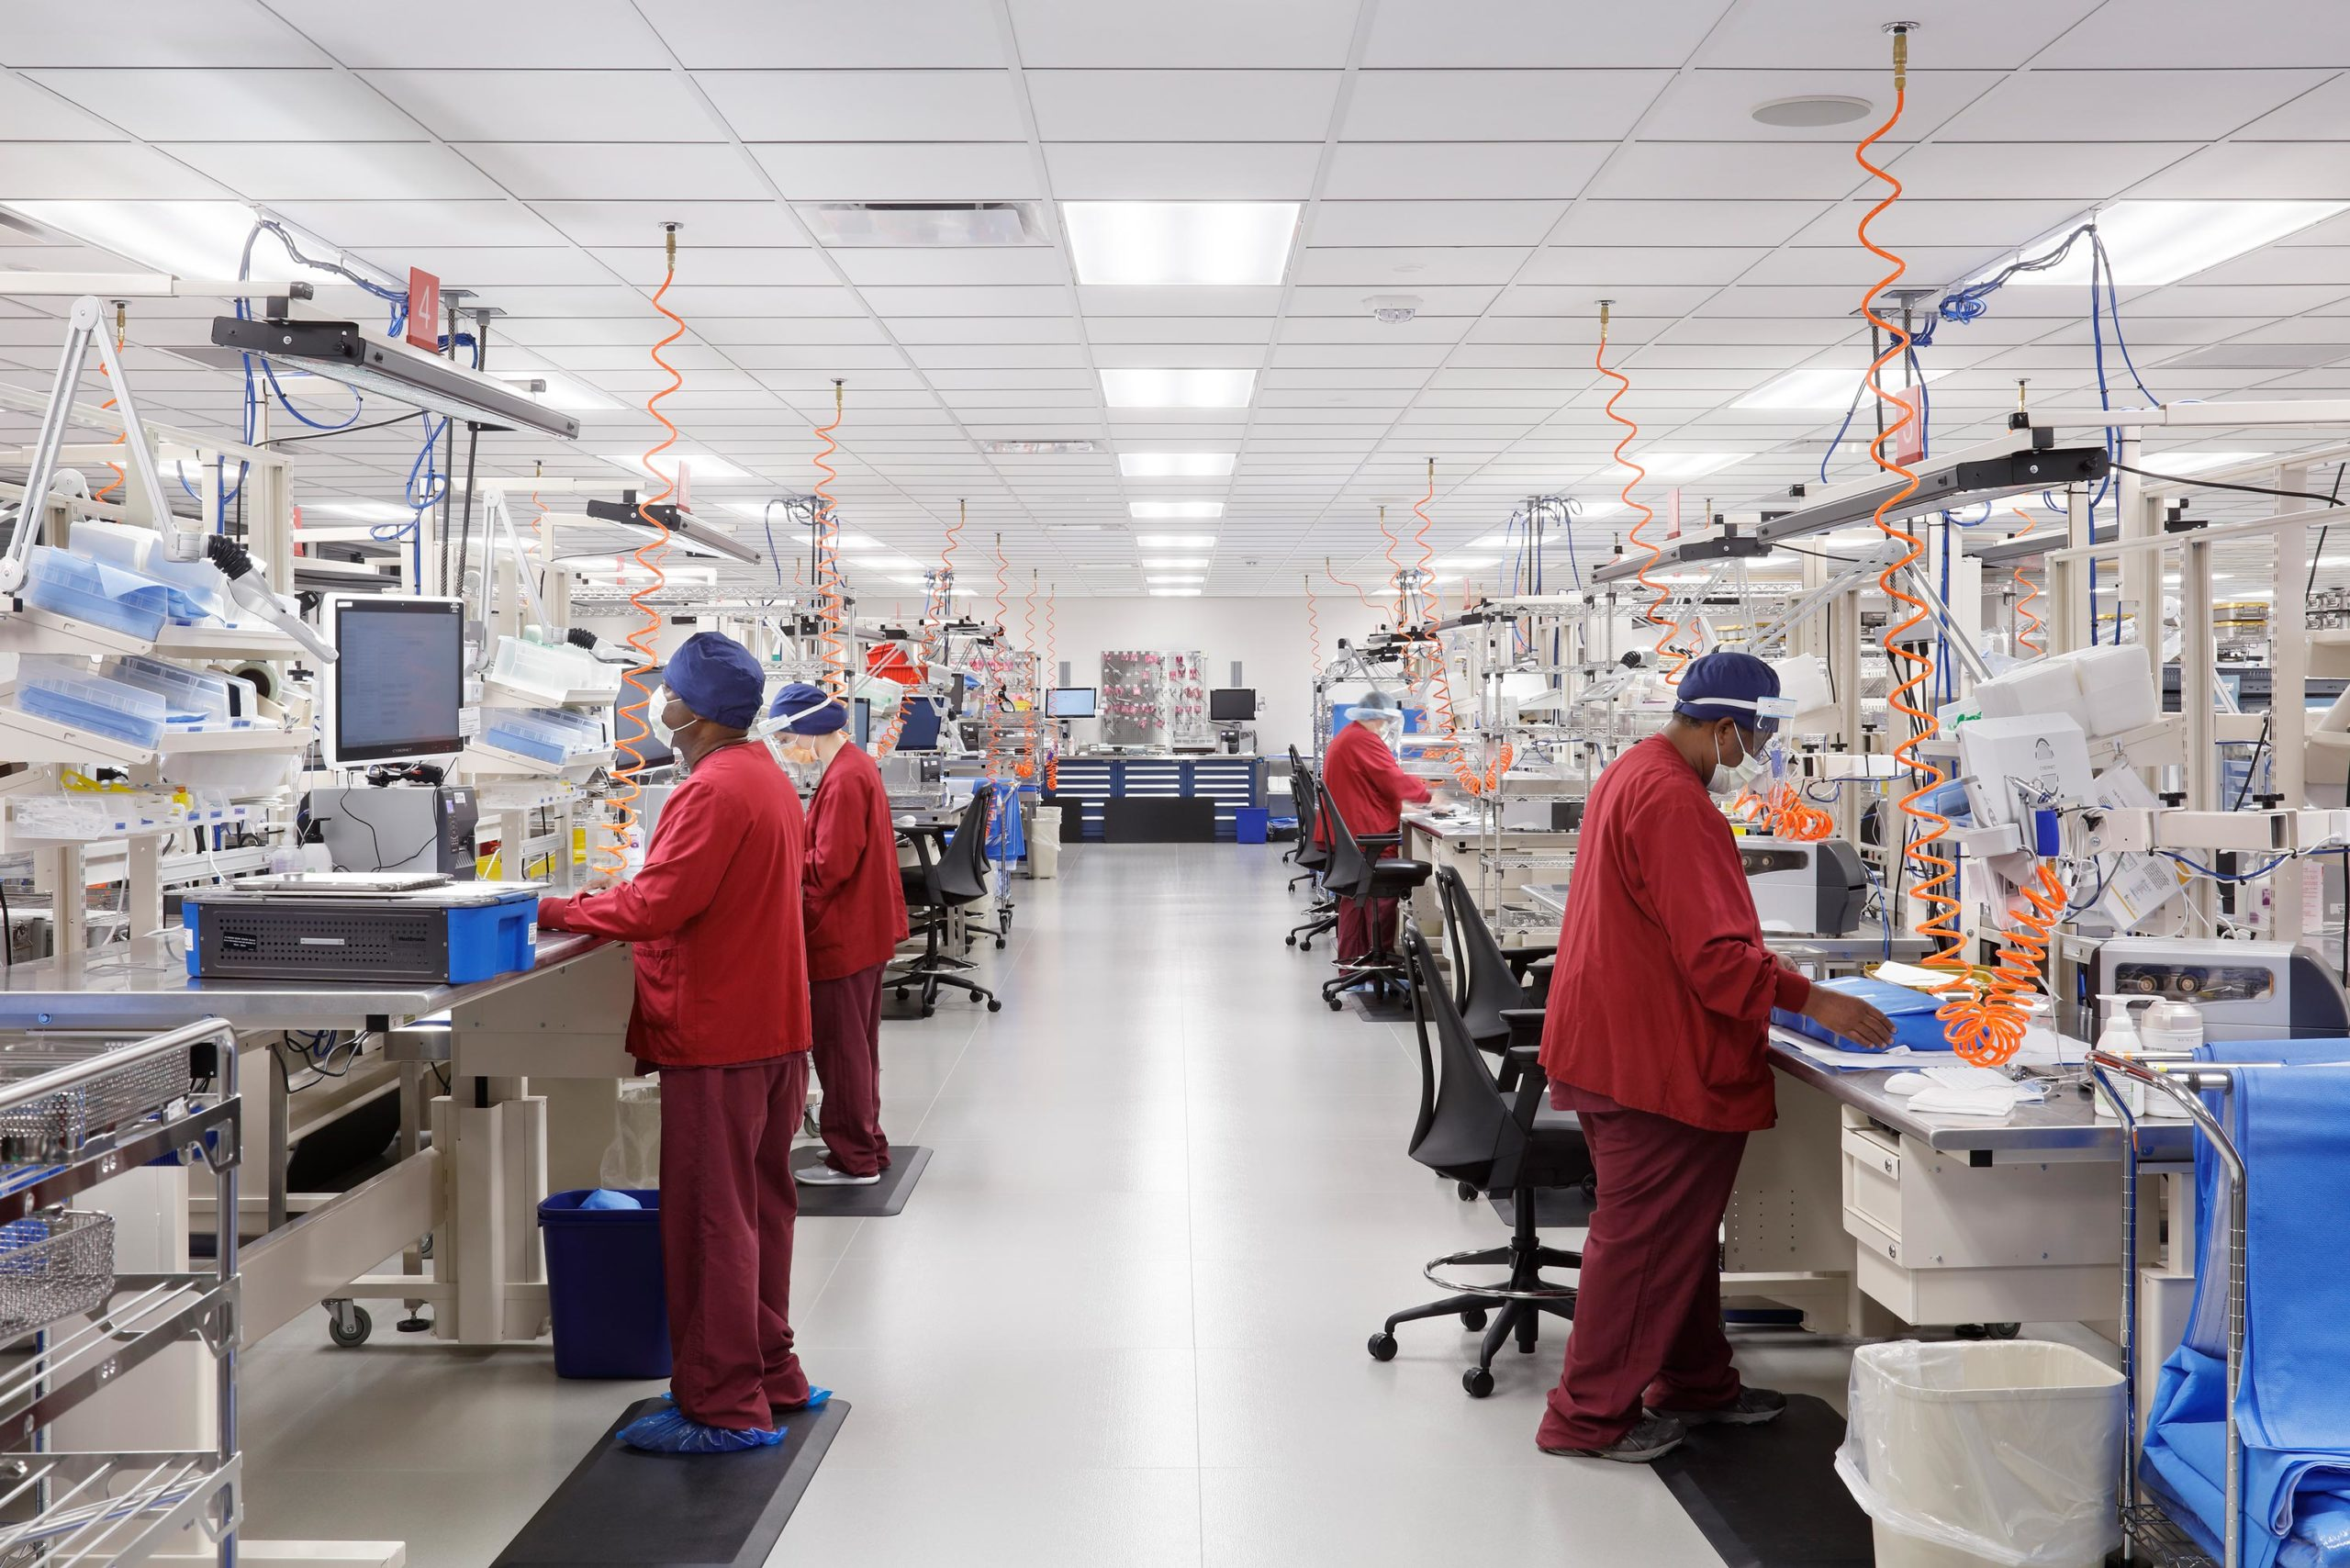 cmba-projects-healthcare-uihc-central-sterile-2